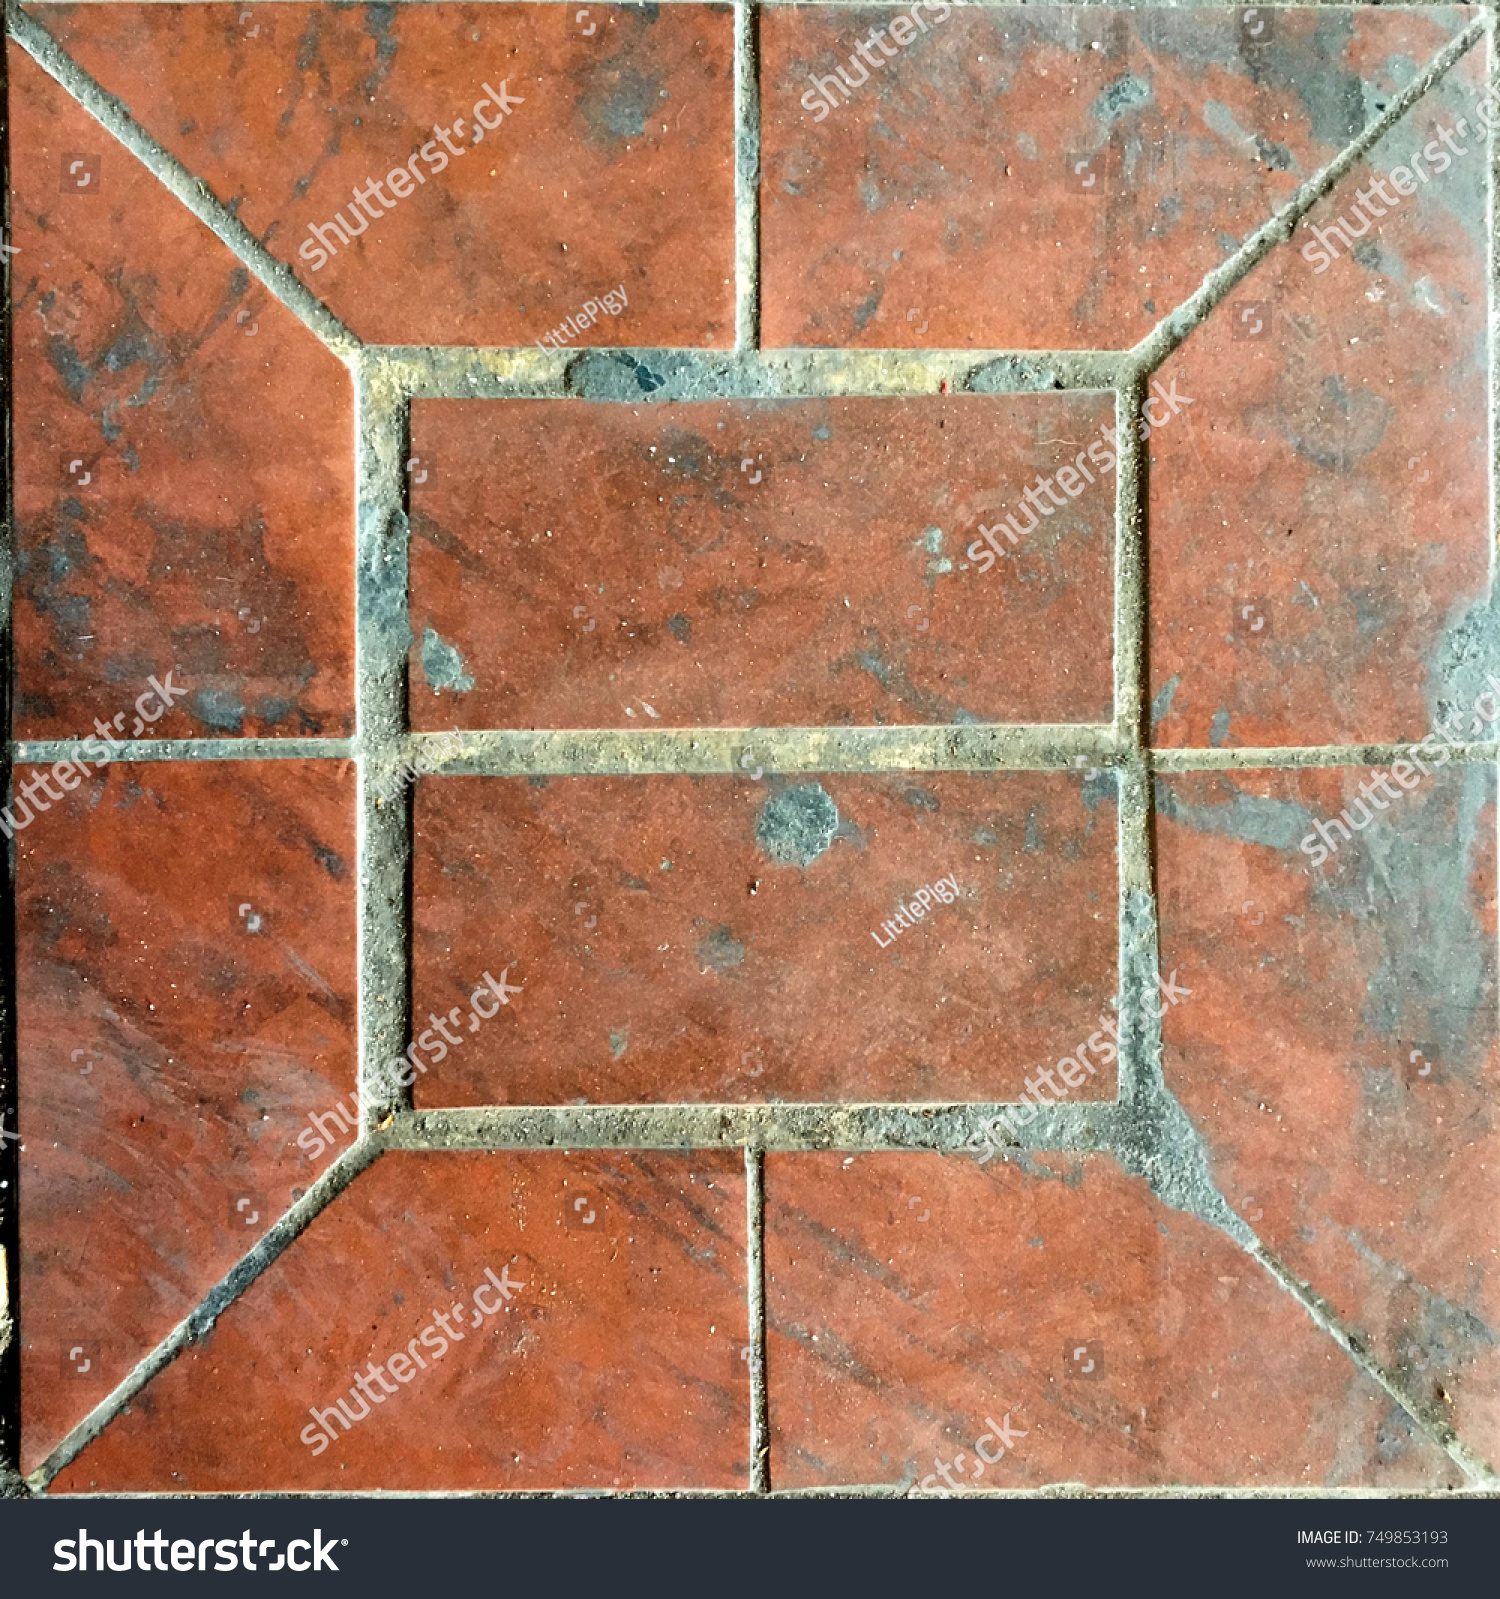 Clay tile floor images home flooring design spanish mission red terracotta floor tile choice image tile red clay floor tile image collections tile doublecrazyfo Gallery